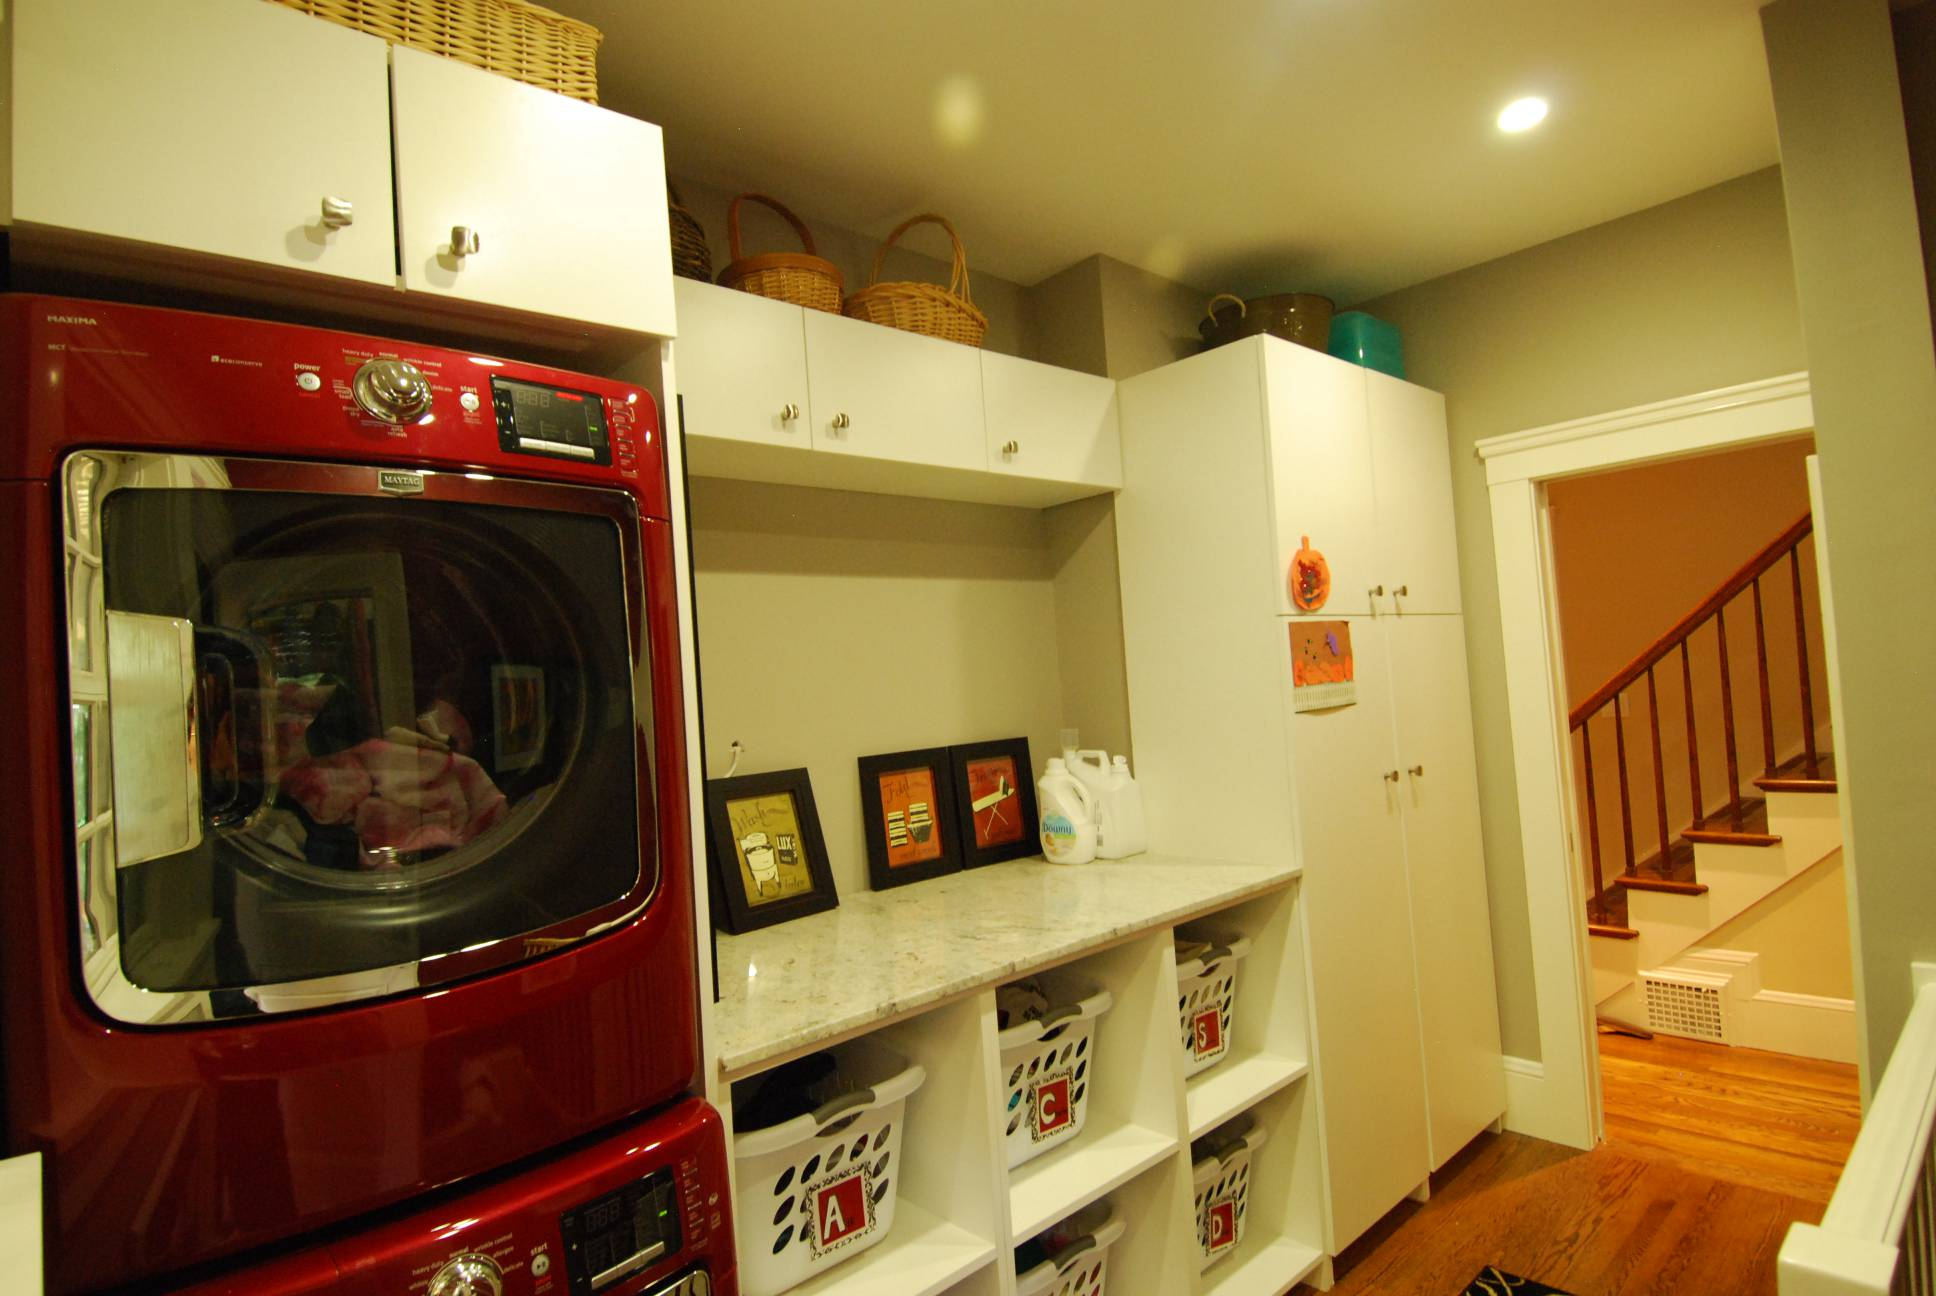 Laundry room storage, Architect work, Interior design work, Palo Alto